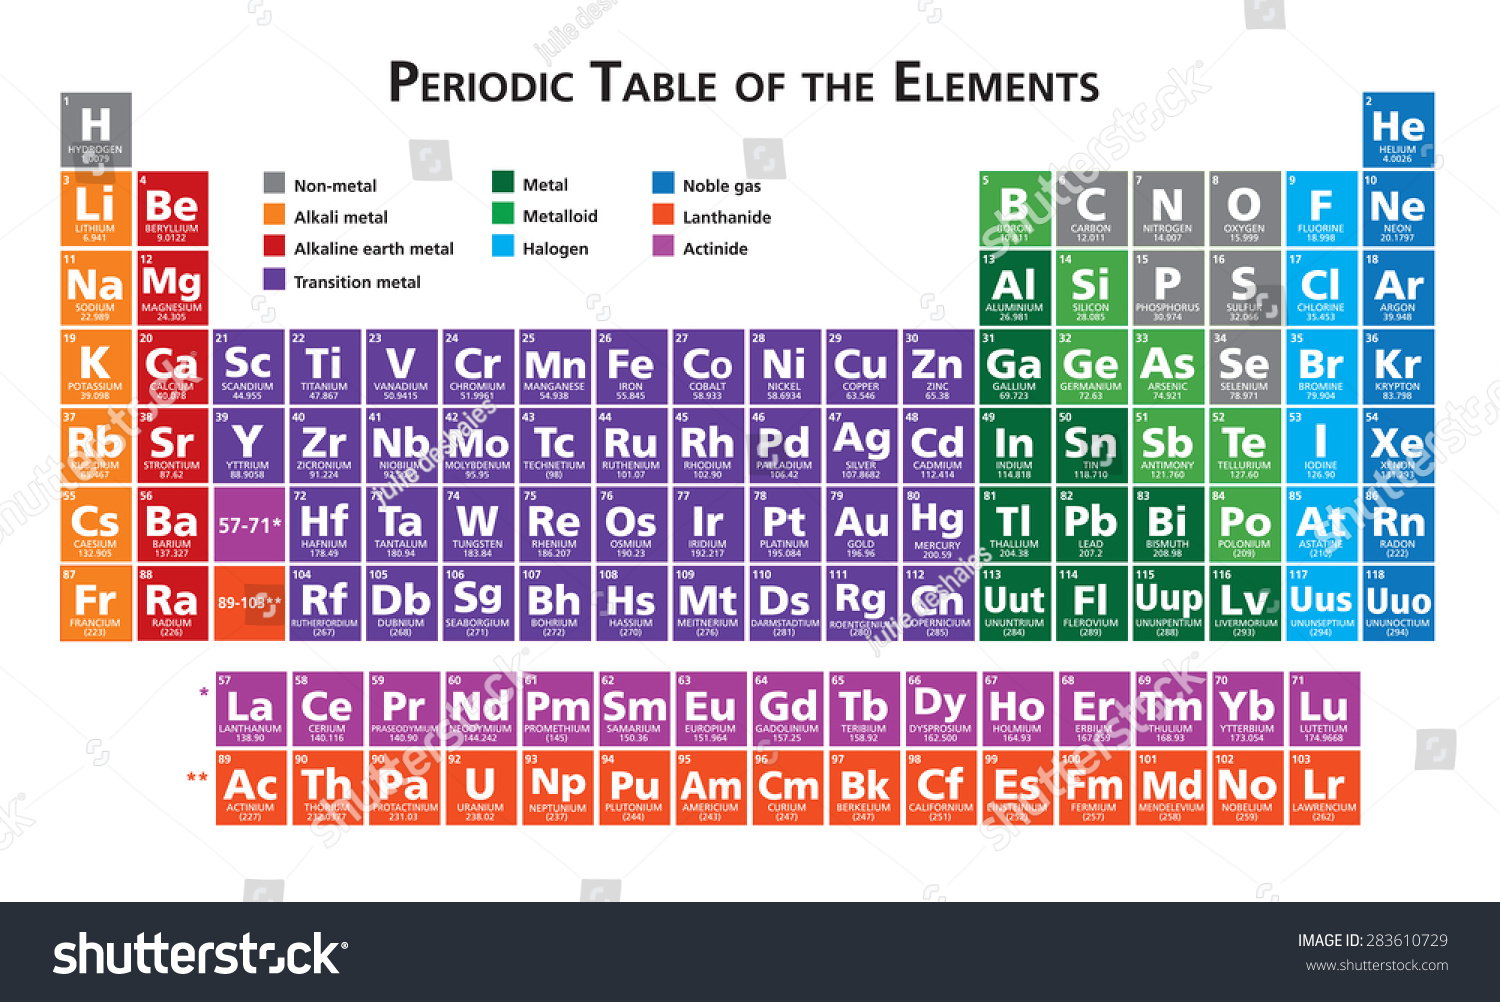 Periodic table elements illustration vector multicolor stock periodic table of the elements illustration vector multicolor gamestrikefo Gallery